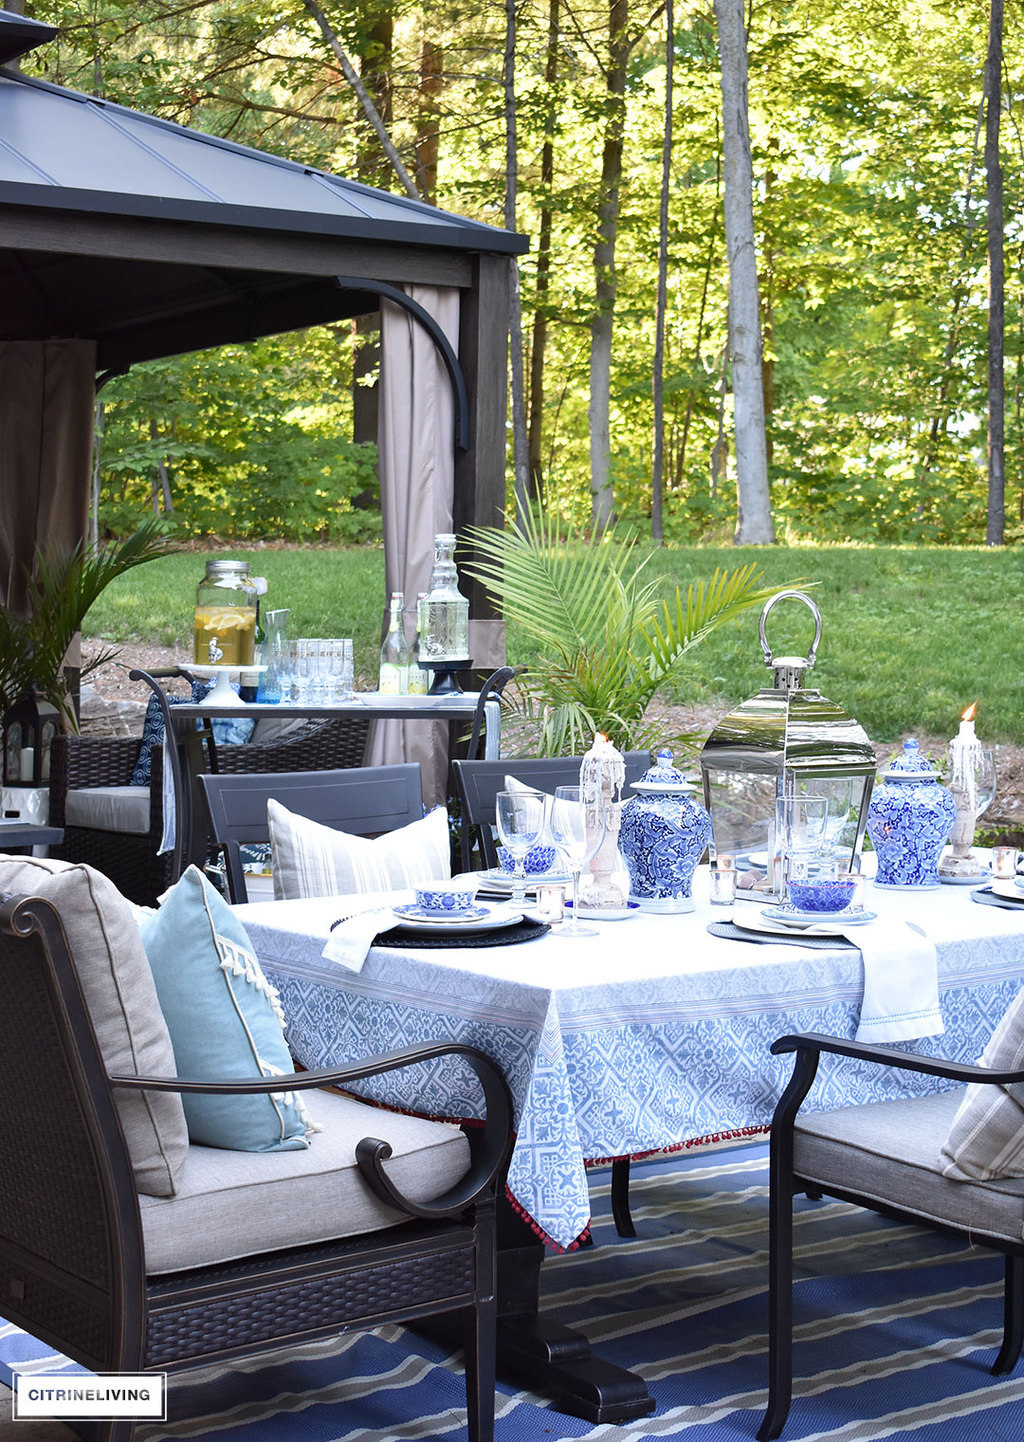 Layers of blue and white mixed with pattern and texture is a key element in this outdoor setting.